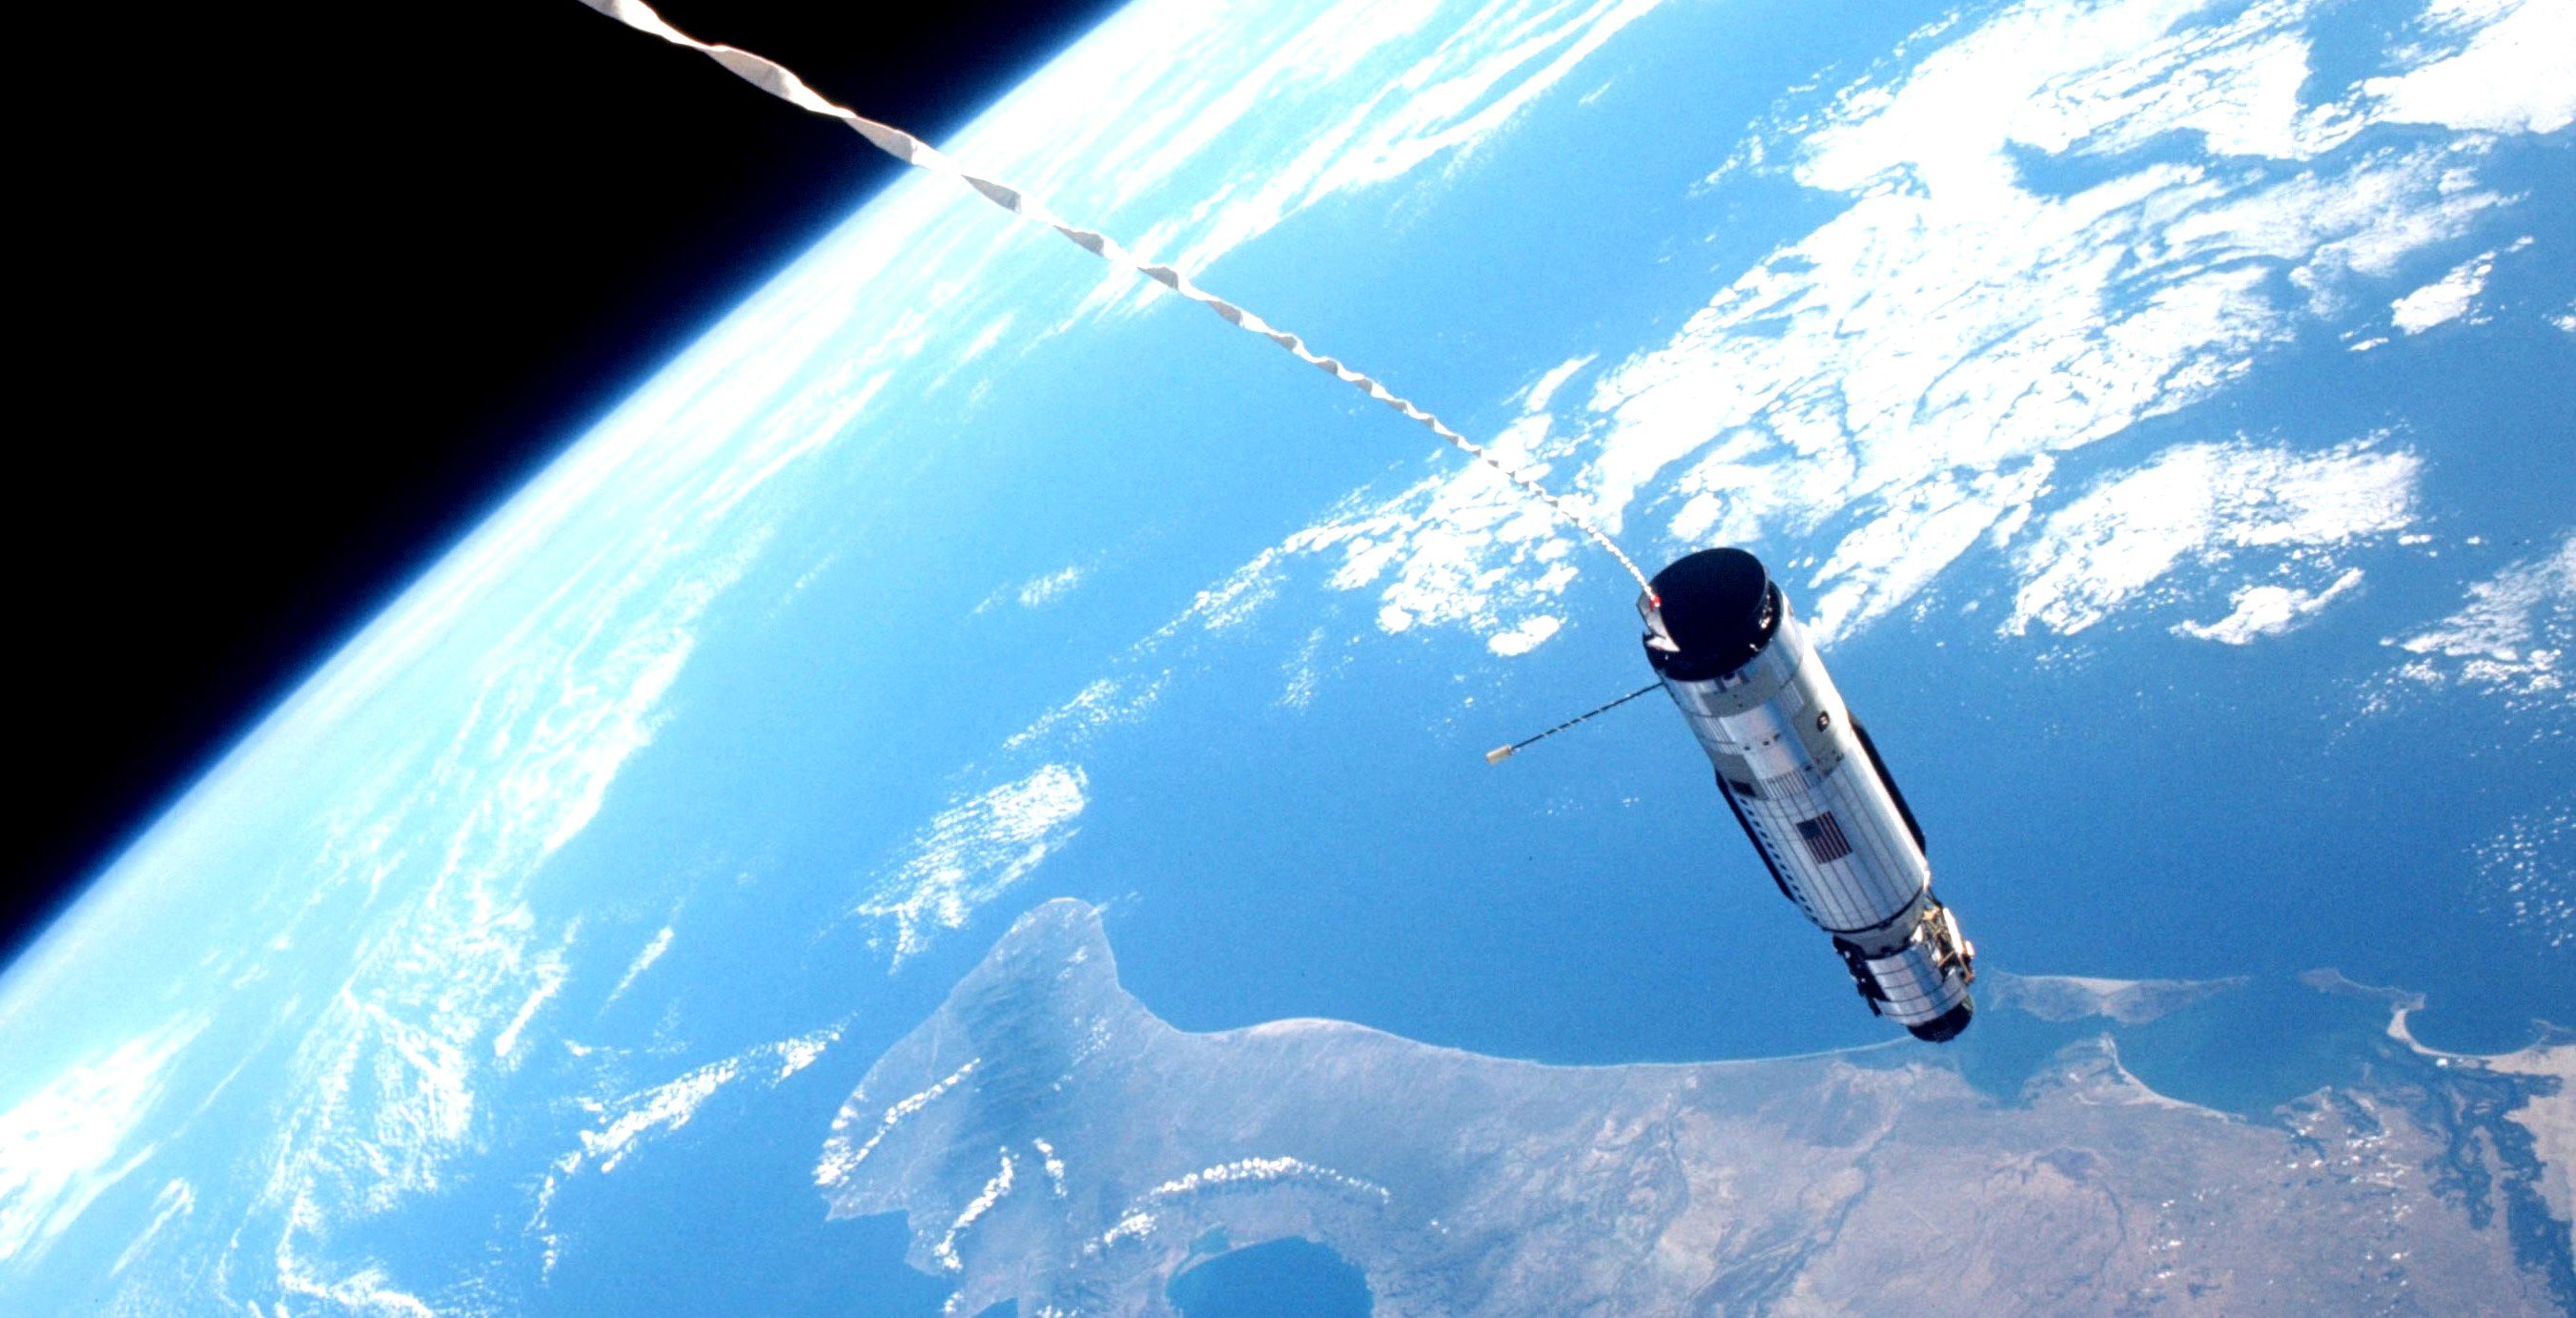 Gemini XII tethered to the Agena to test using centrifugal ...